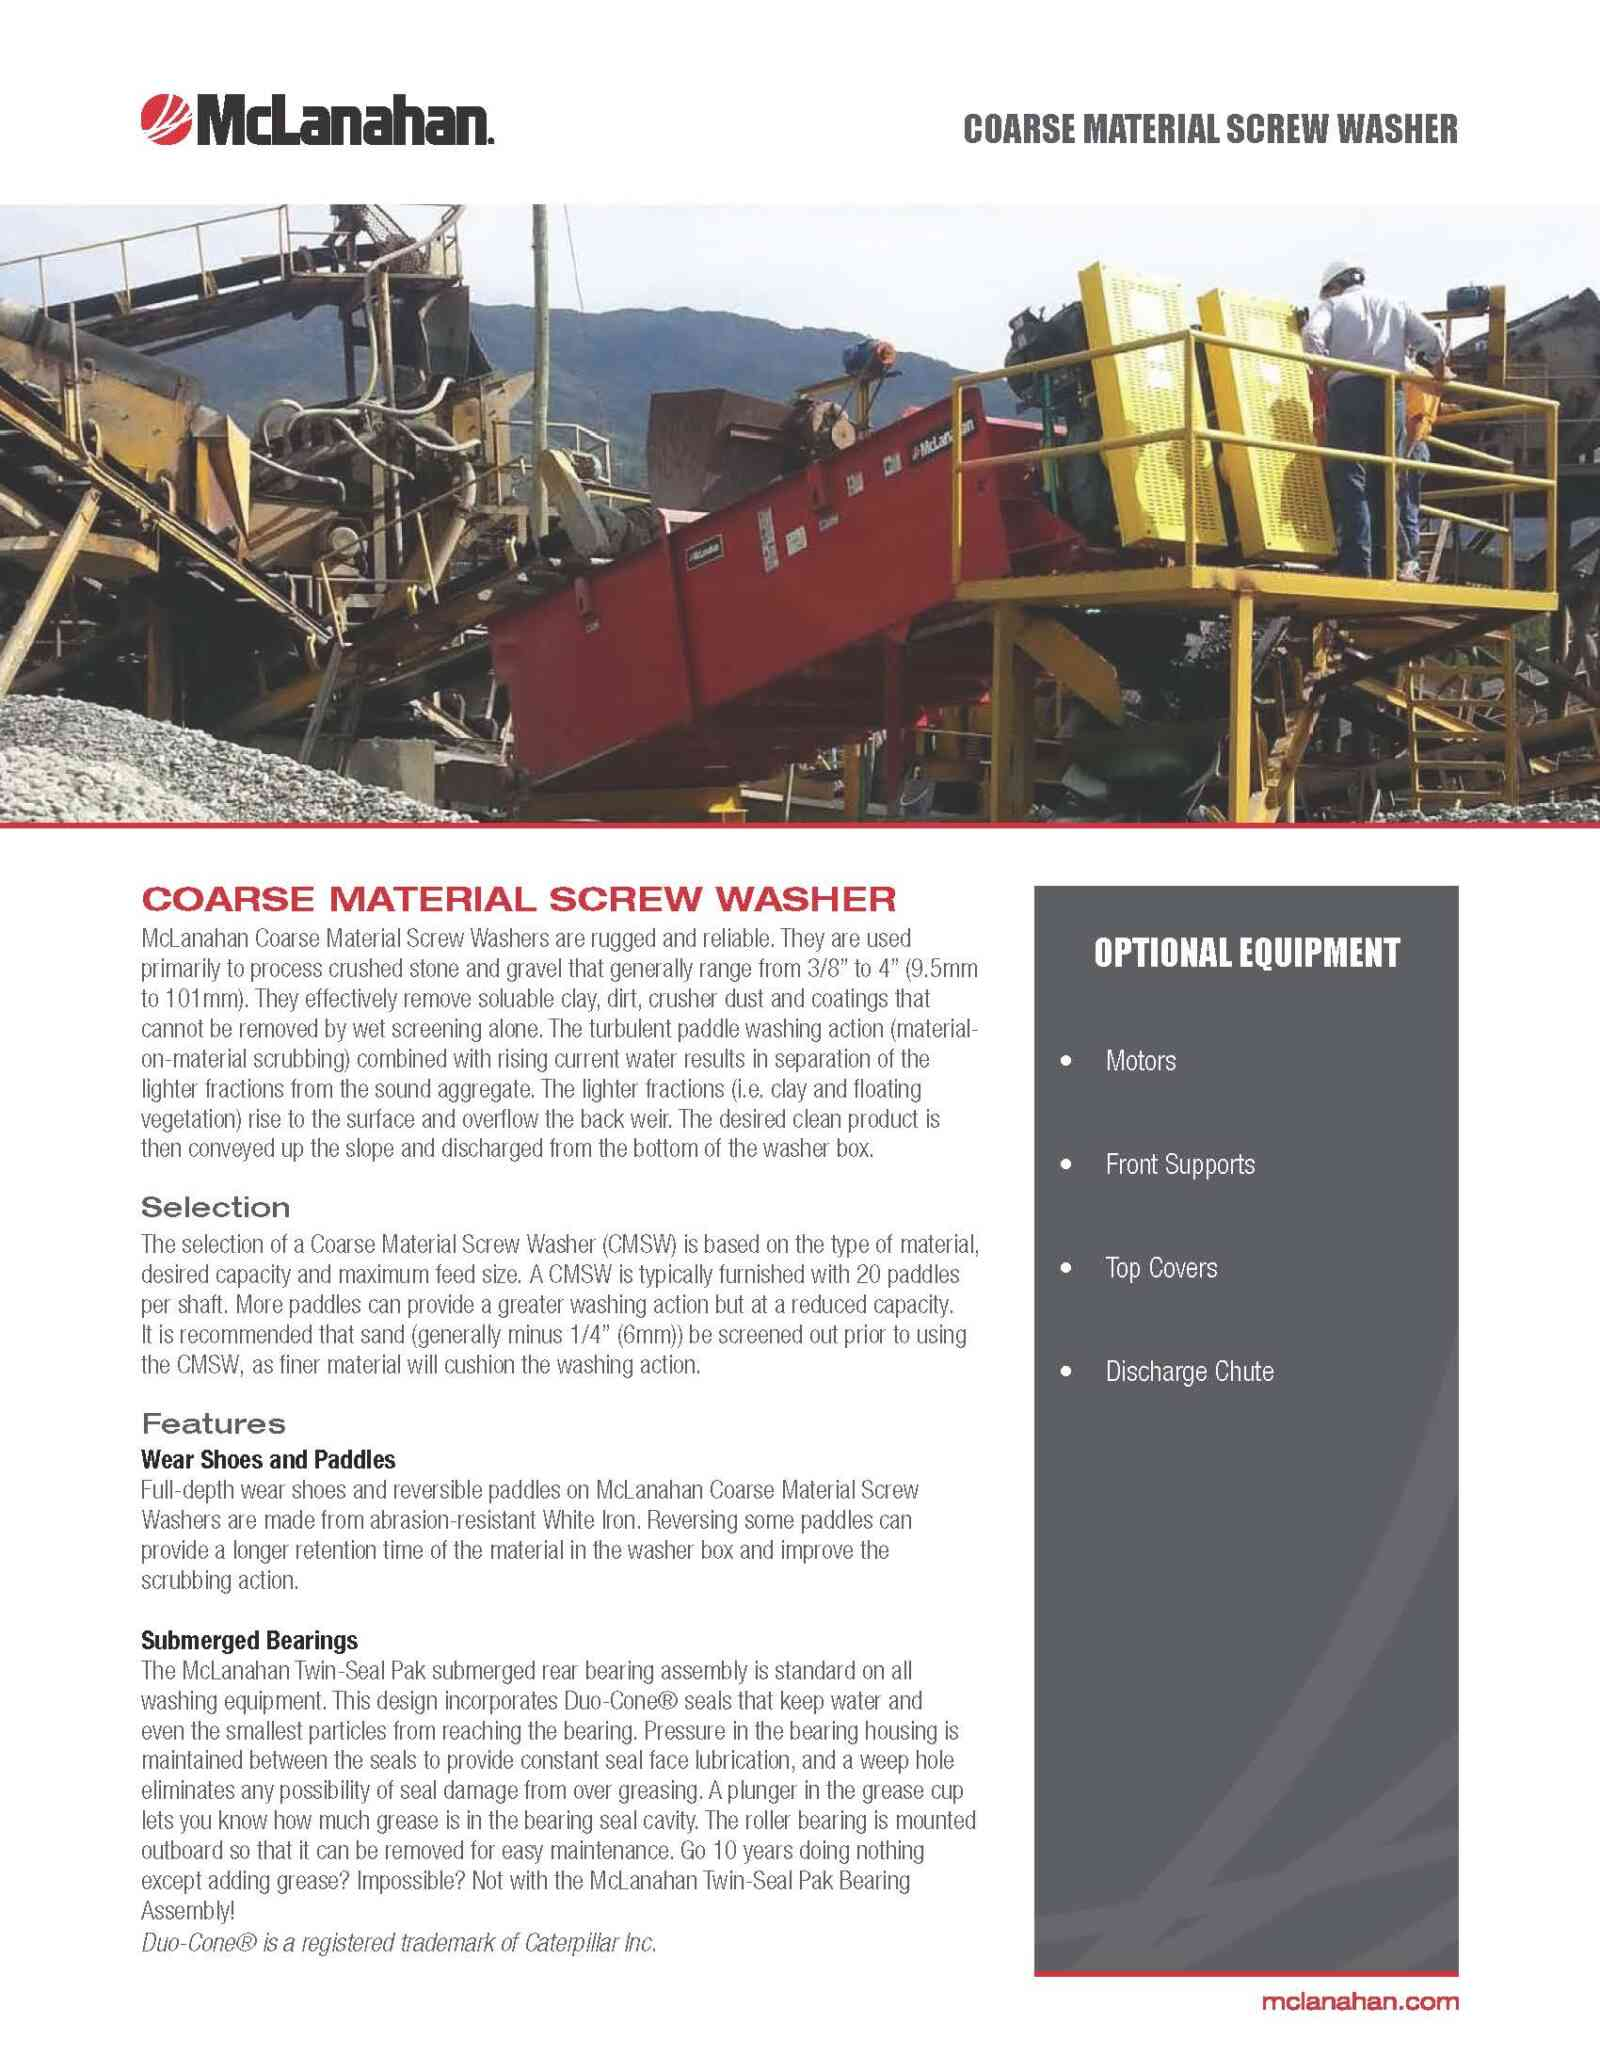 Coarse Material Screw Washer Brochure Preview Page 1